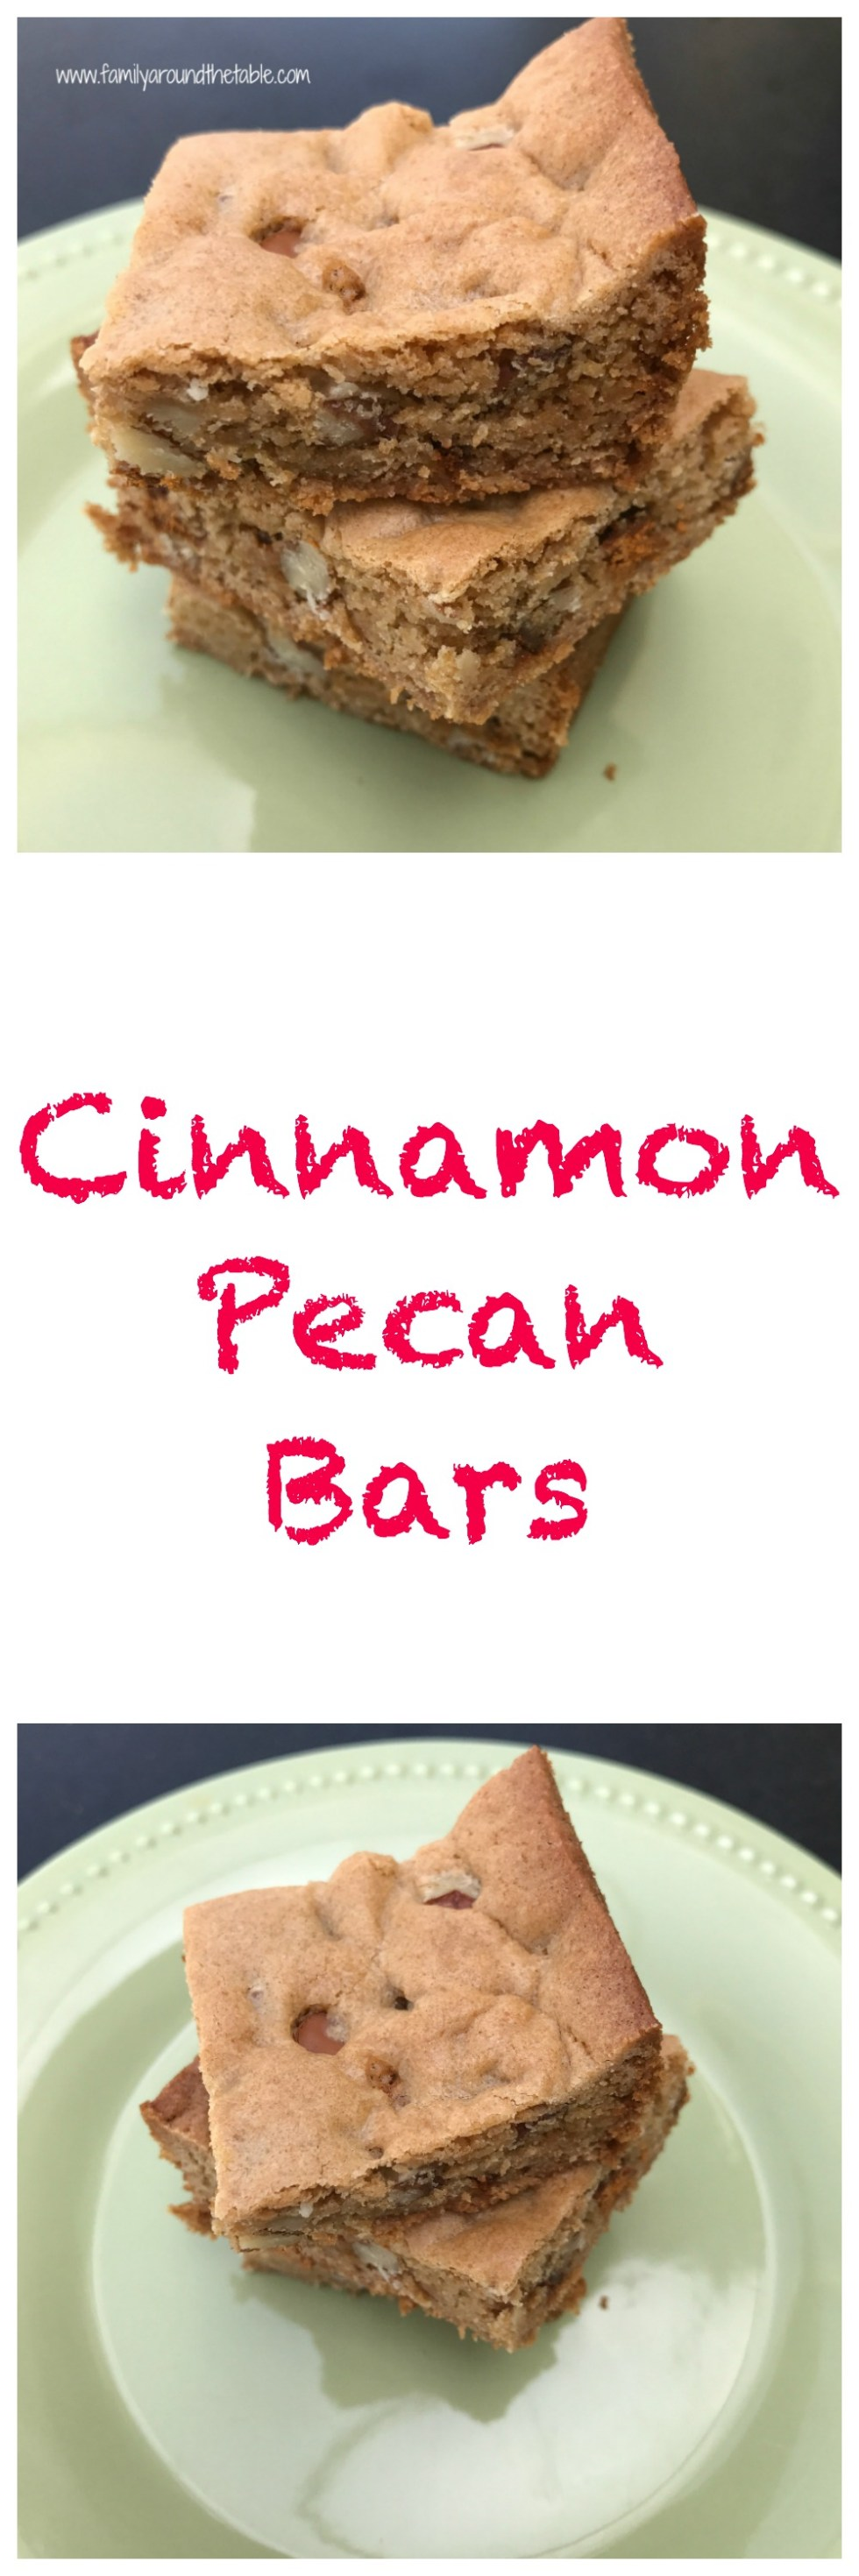 Cinnamon pecan bars are a yummy lunch box treat or snack.